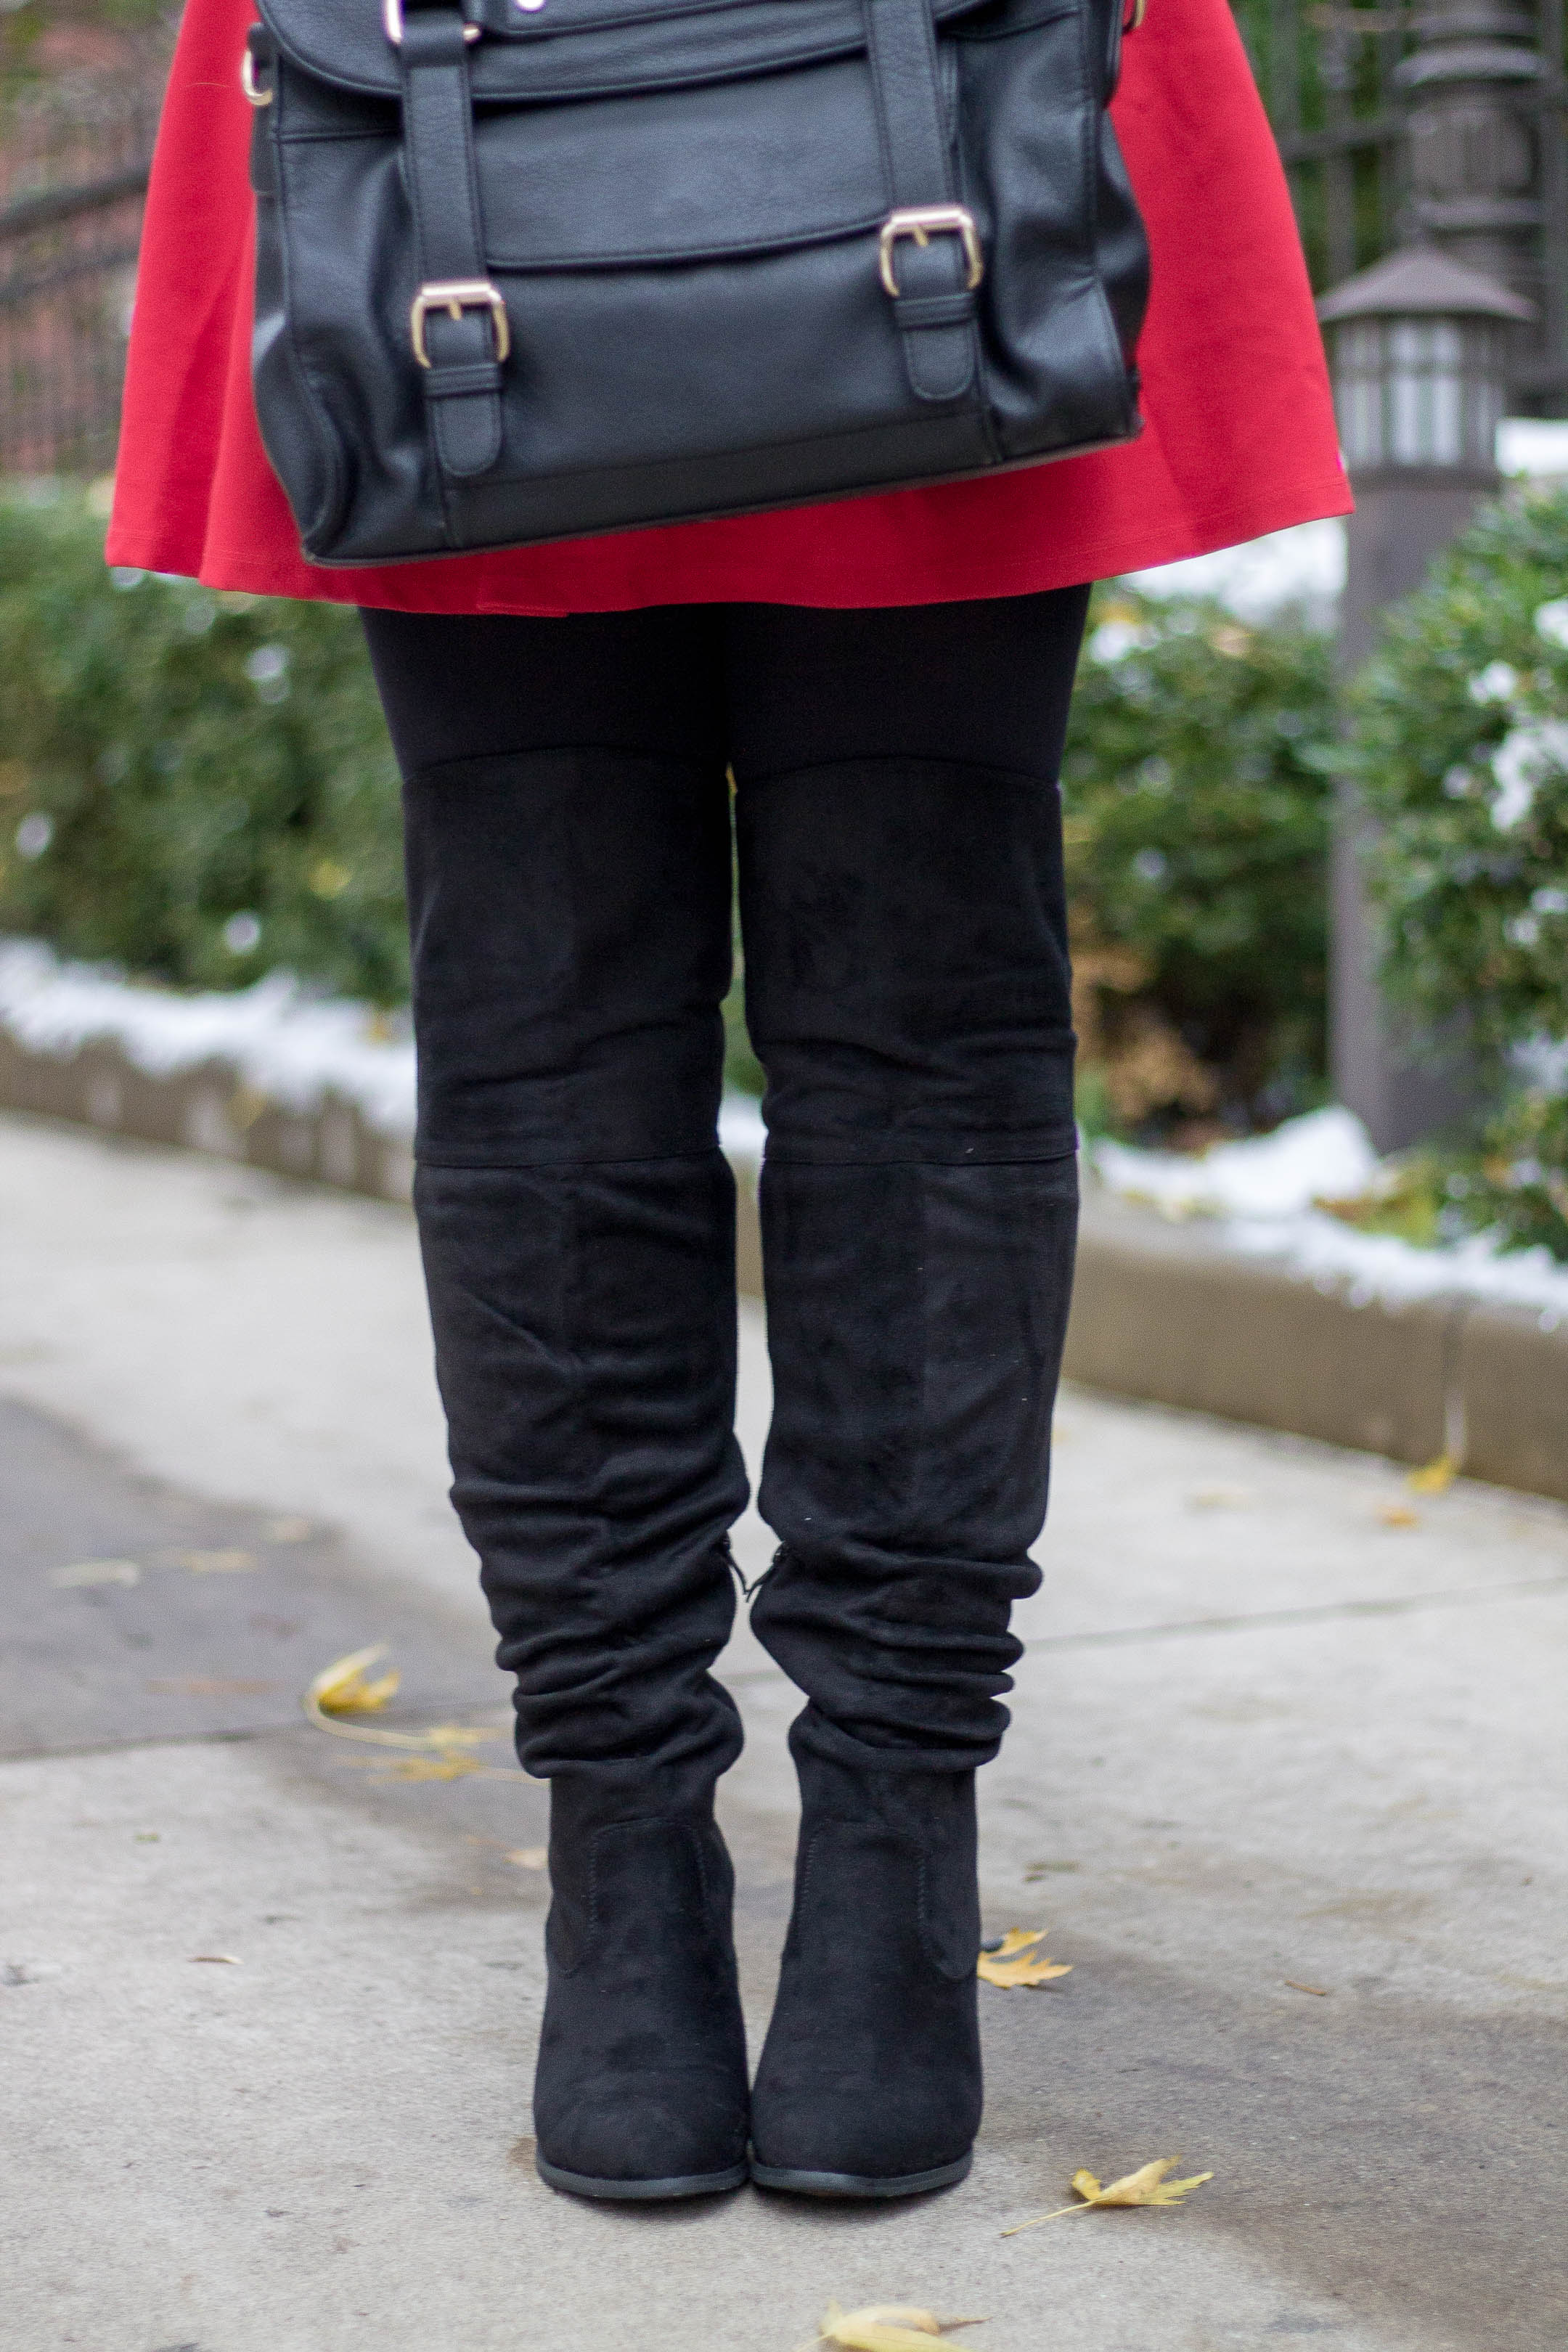 Journee Collection Knee High Boots in Black